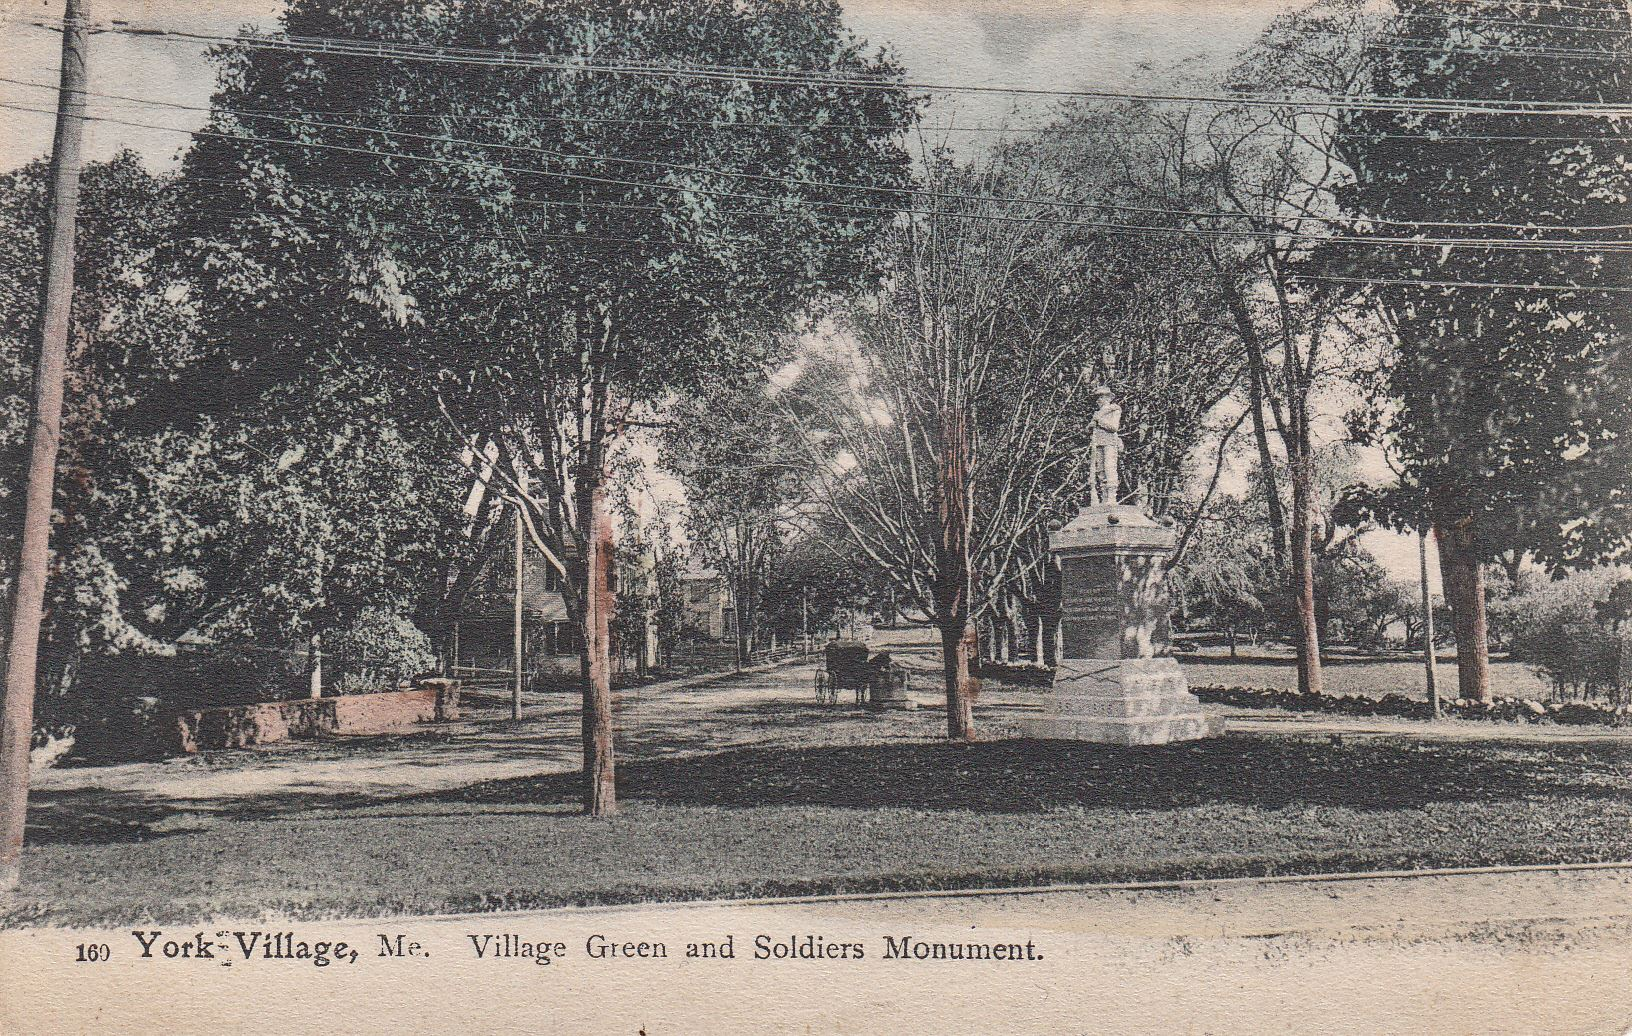 Village Green and Soldiers Monument